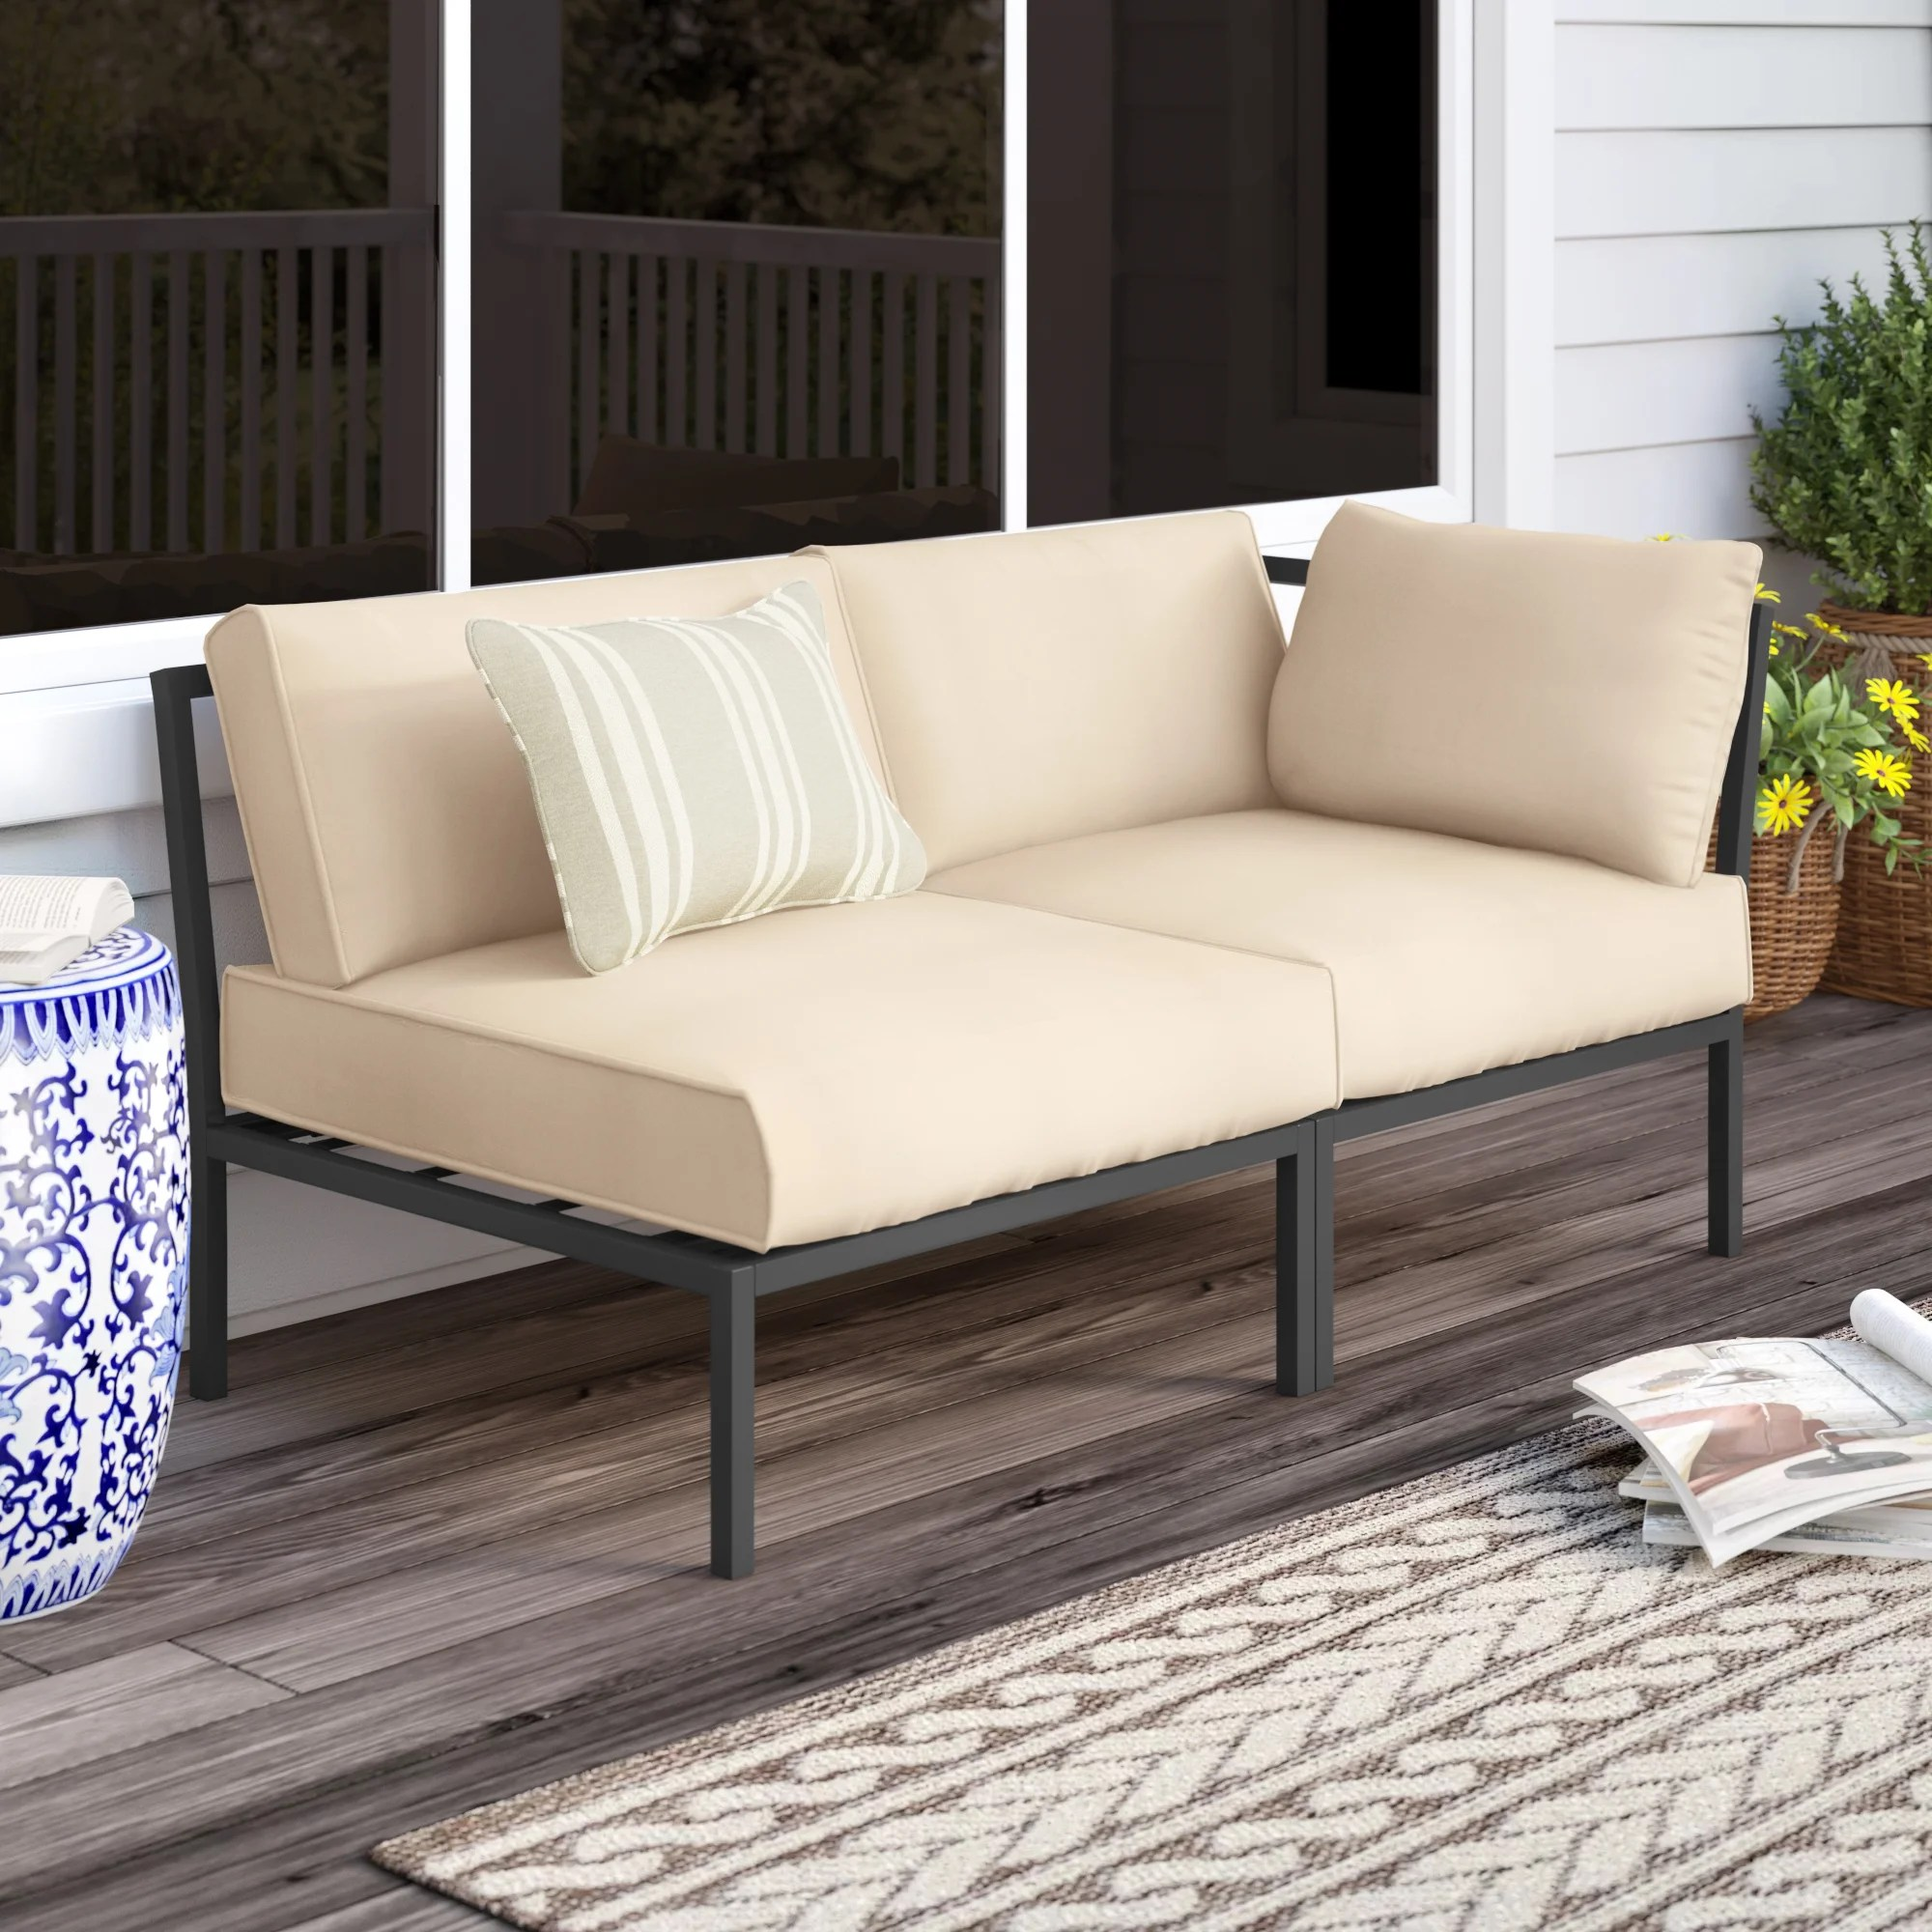 Outdoor Sofas Loveseats You Ll Love In 2020 Wayfair - Outdoor Furniture Clearance Free